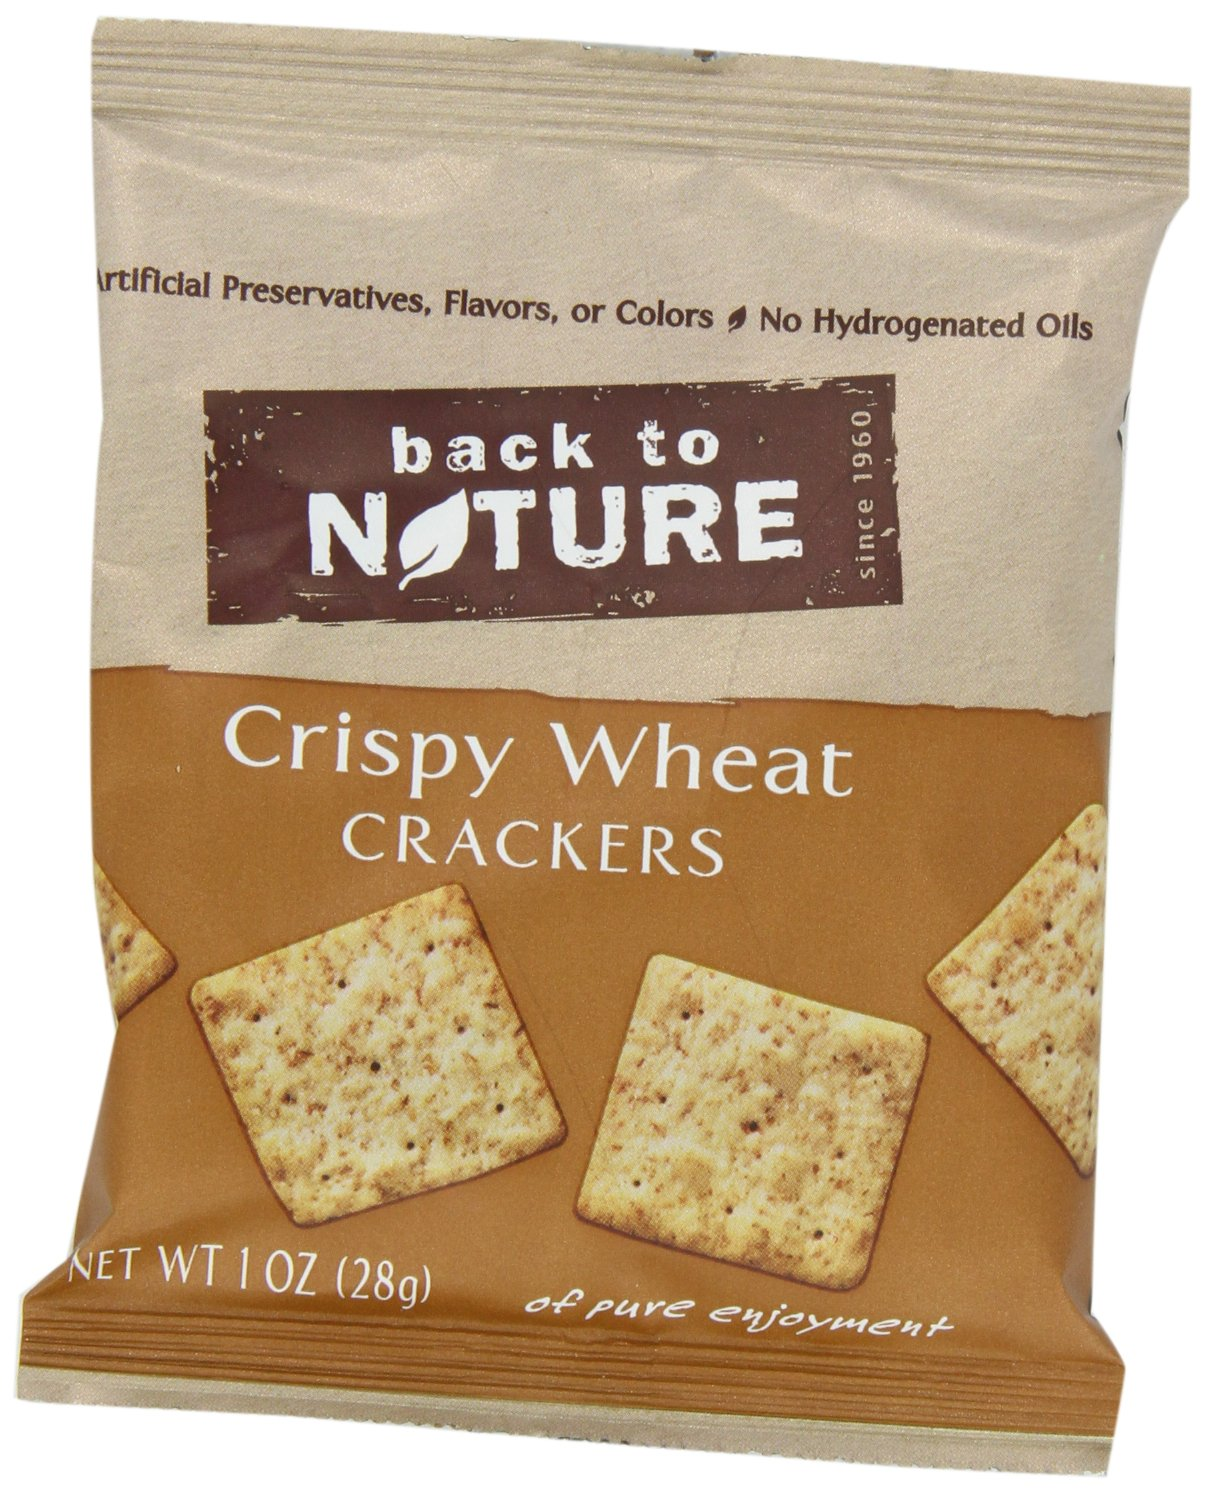 Back to Nature Non-GMO Crispy Wheat Crackers, 1 Ounce, 8 Count (Pack of 4) by Back to Nature